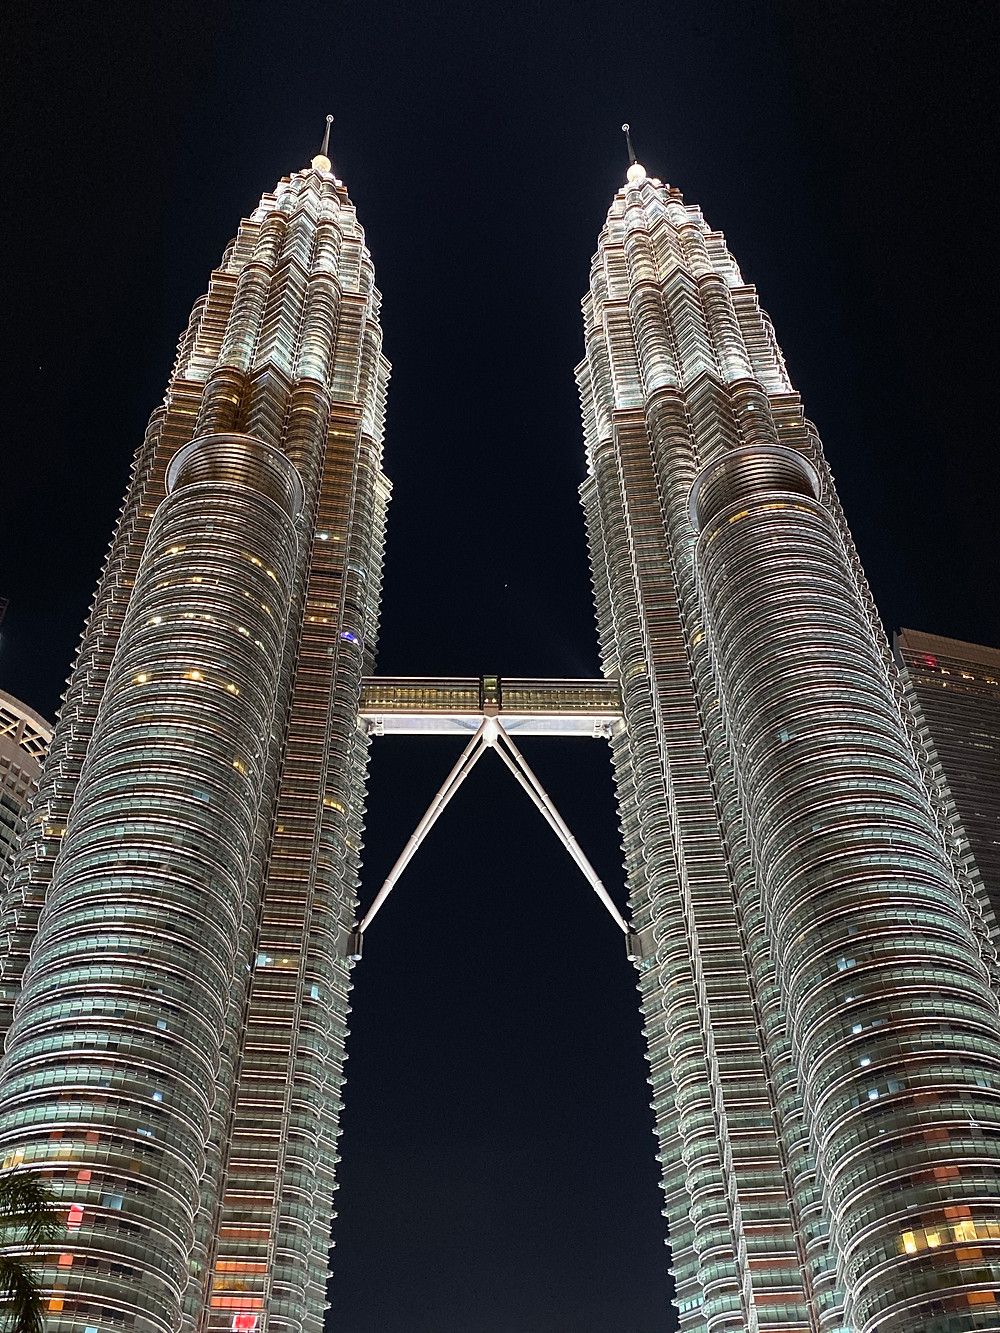 The beautiful Petronas Towers lit up at night. A two story skybridge connects the 41st and 42nd floors.